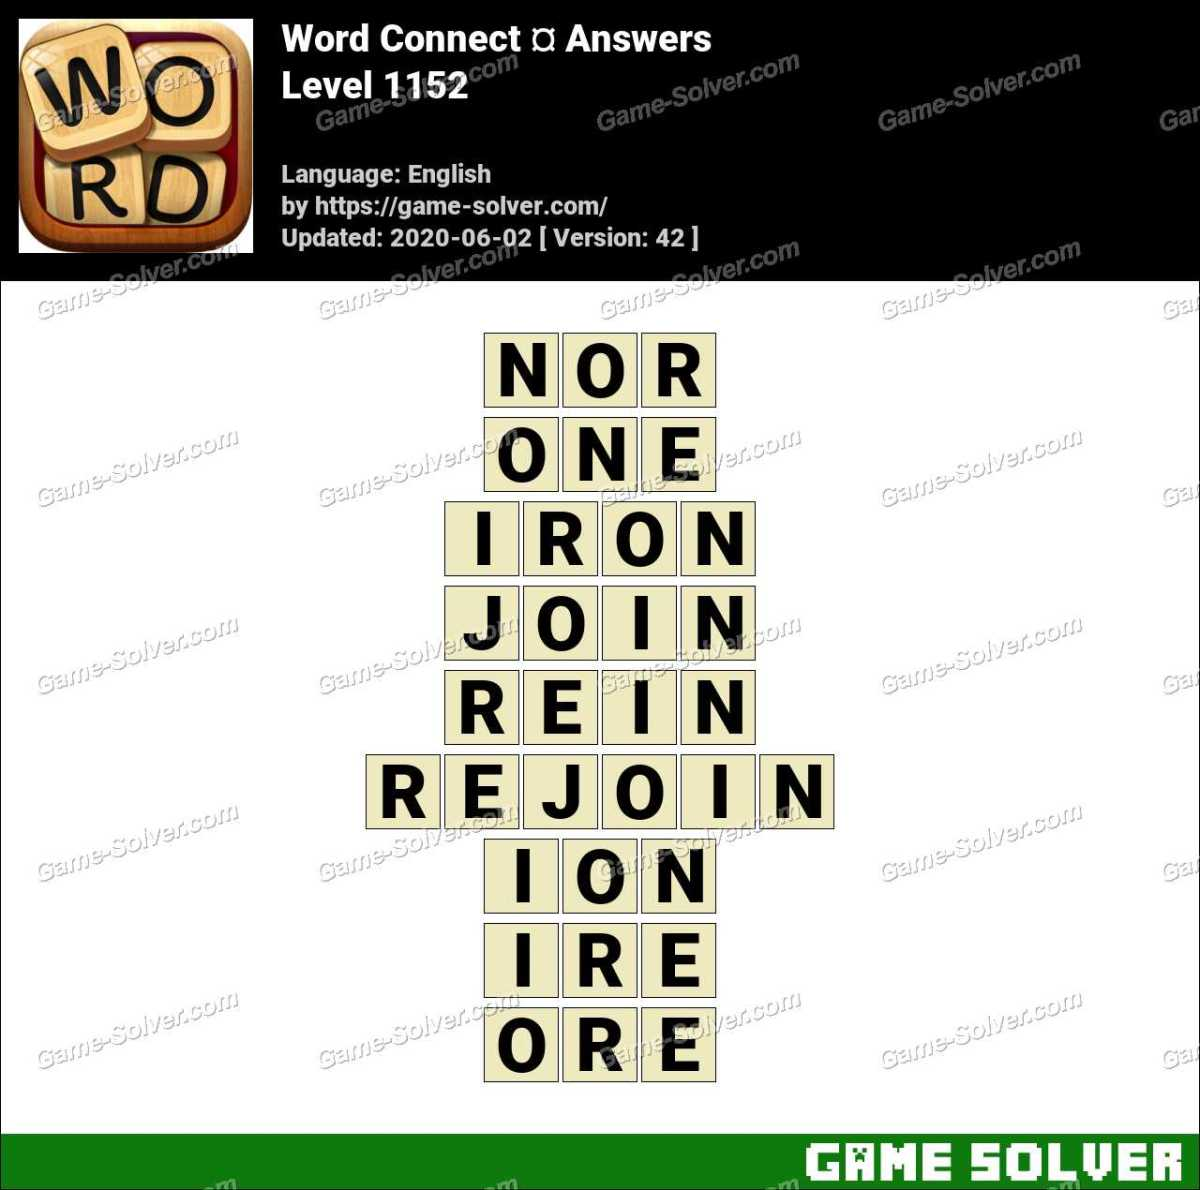 Word Connect Level 1152 Answers